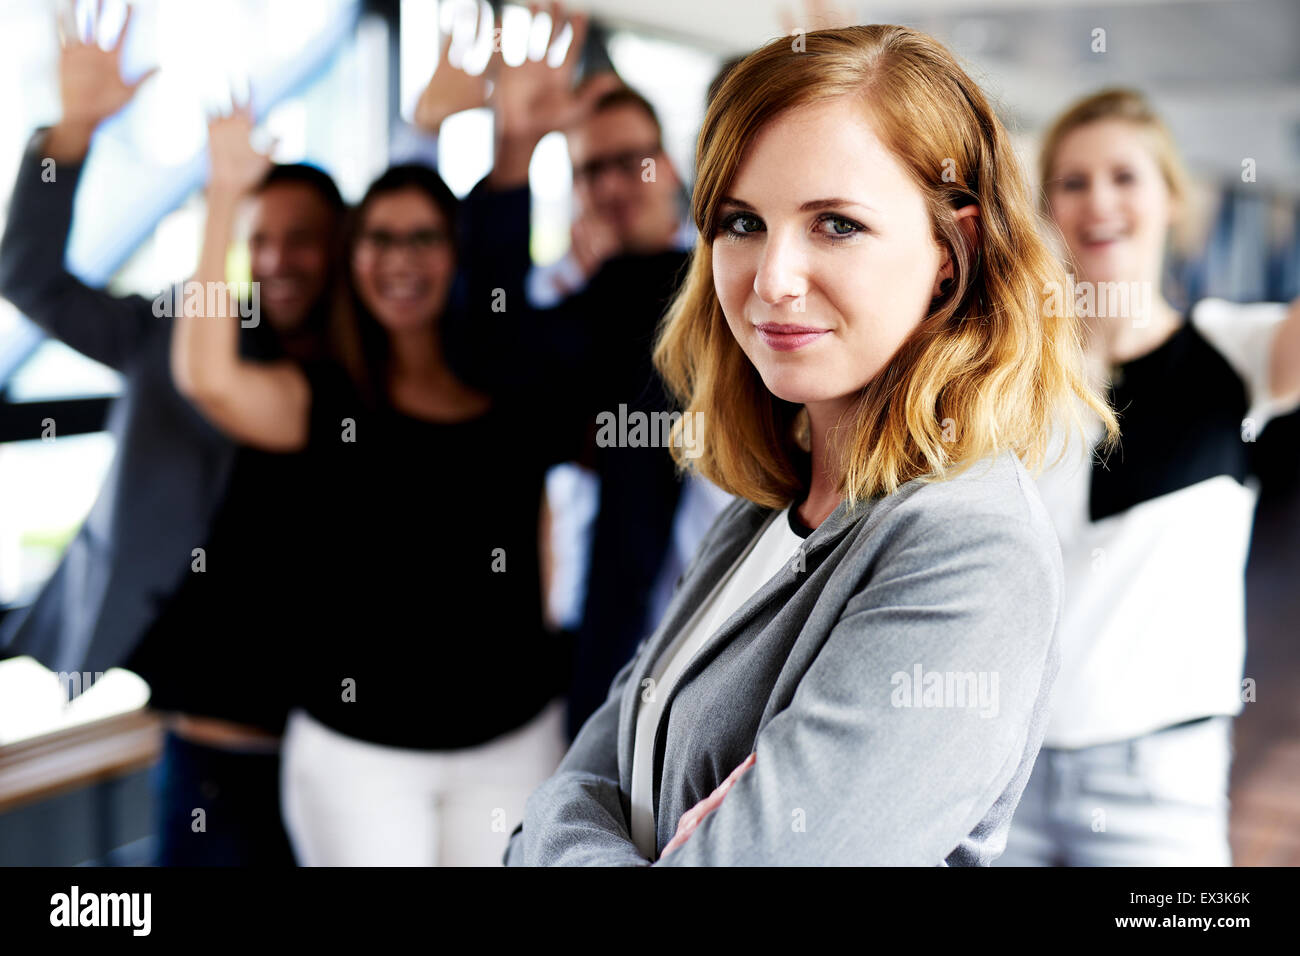 Female white executive standing in front of colleagues with their arms in air - Stock Image